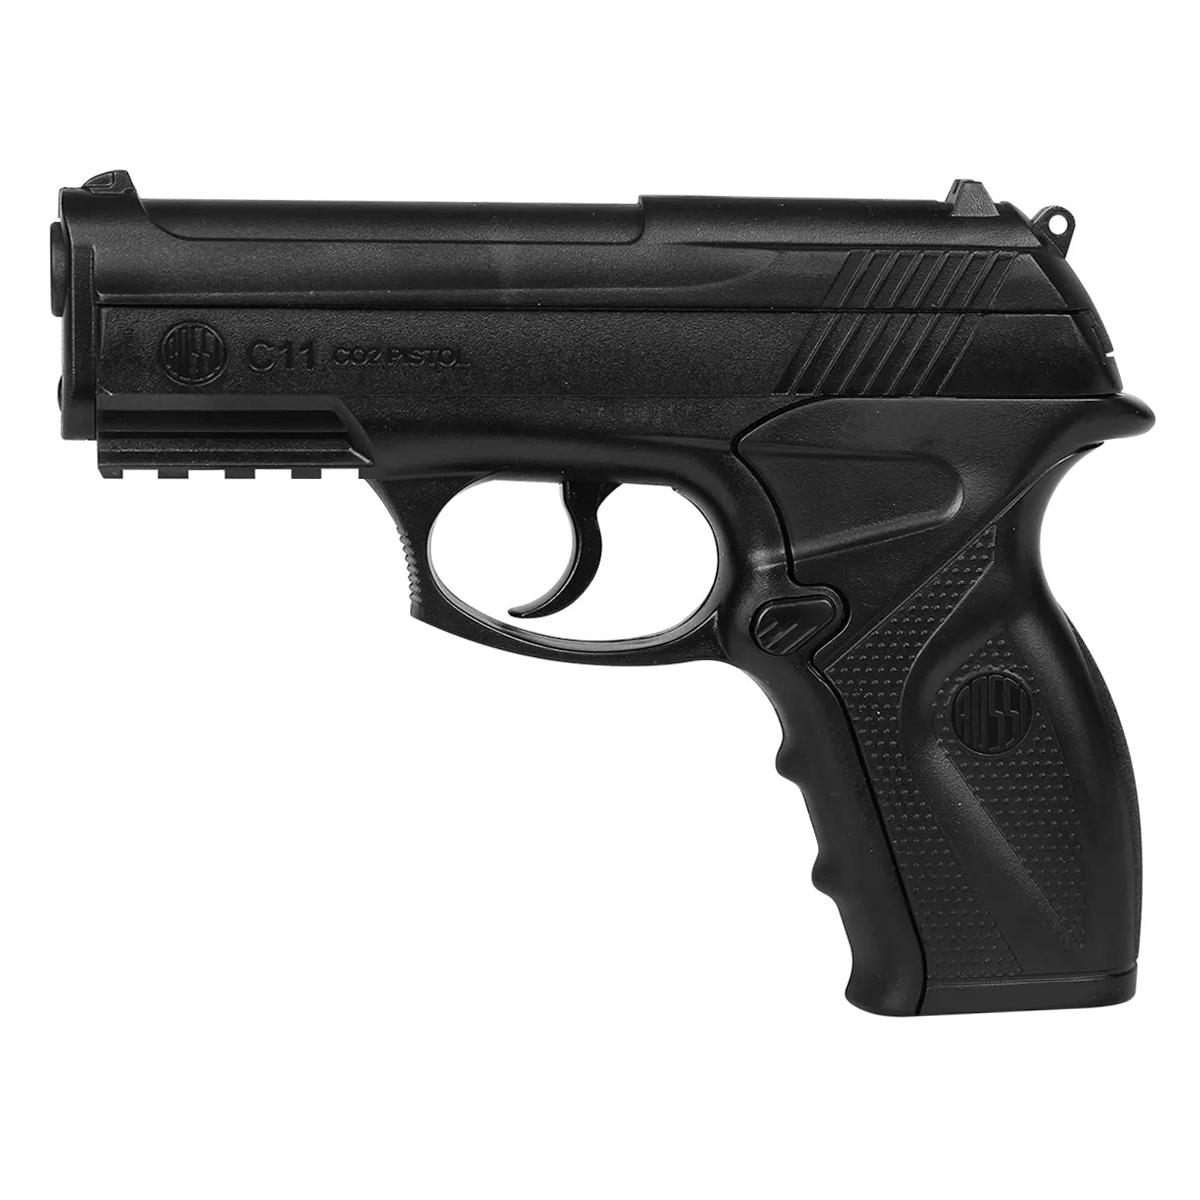 Pistola de Pressão Wingun C11 Rossi 4,5mm CO2 492 FPS